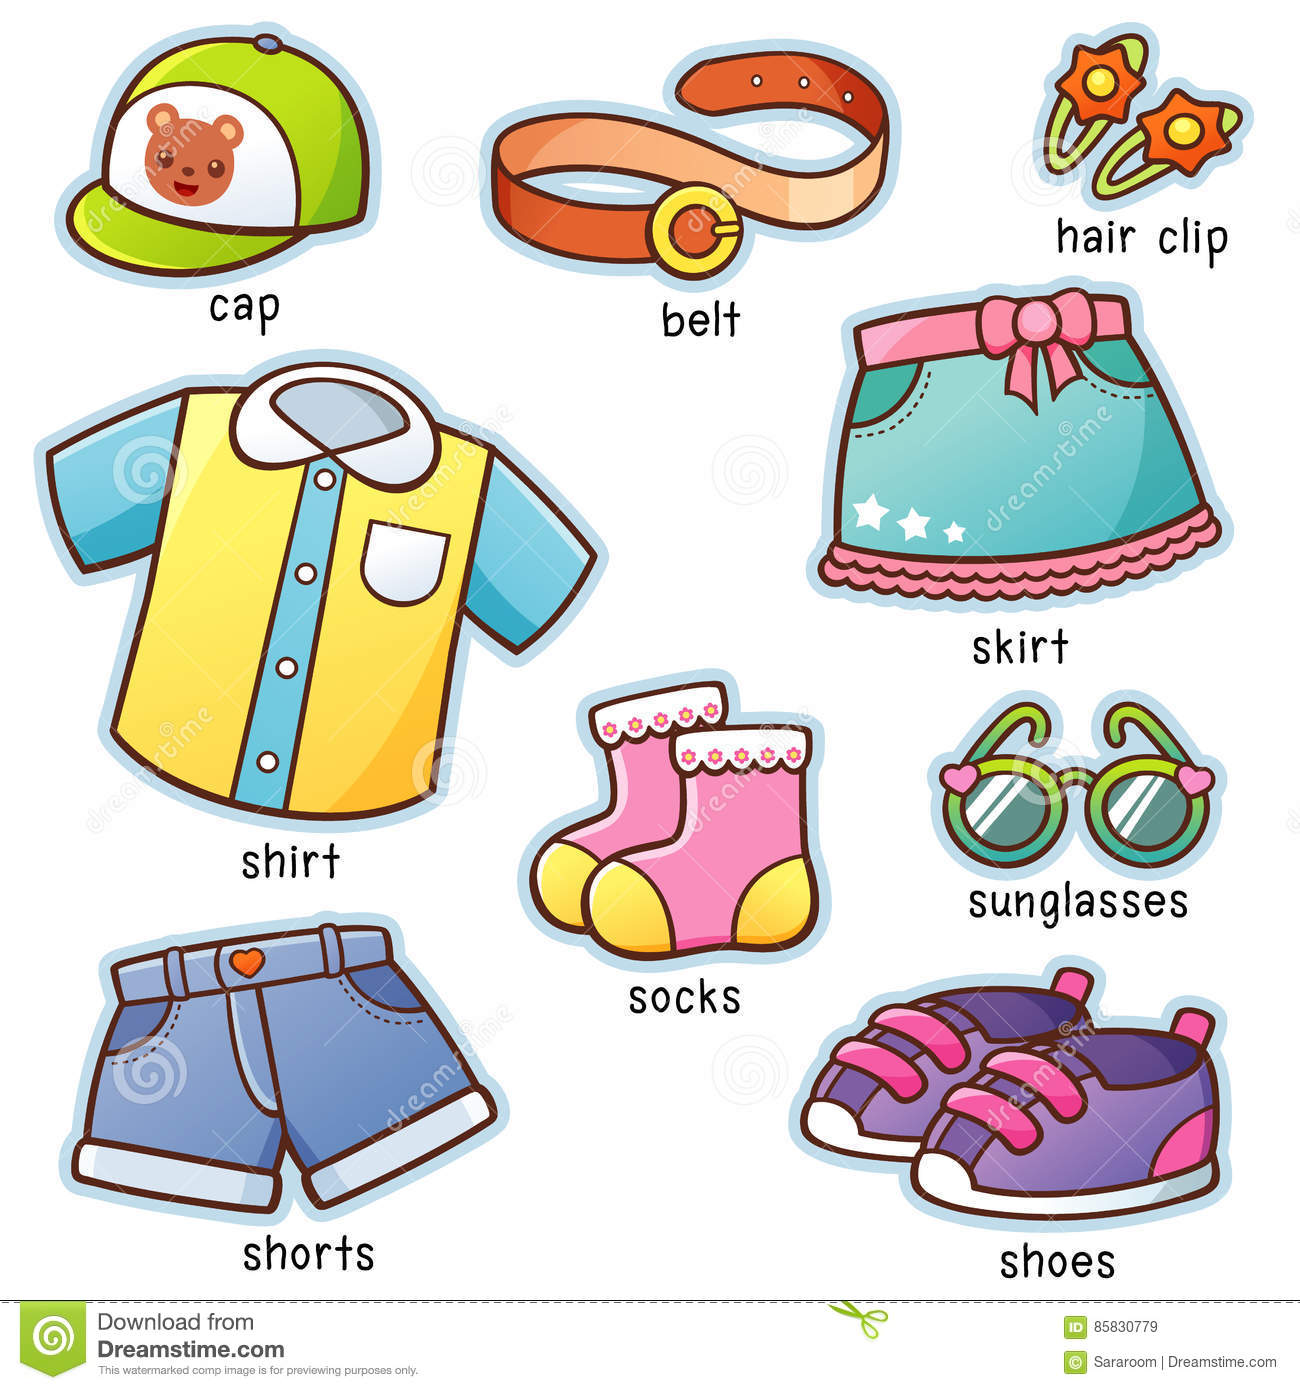 Clothes Stock Vector Illustration Of Shoes Shorts Clip